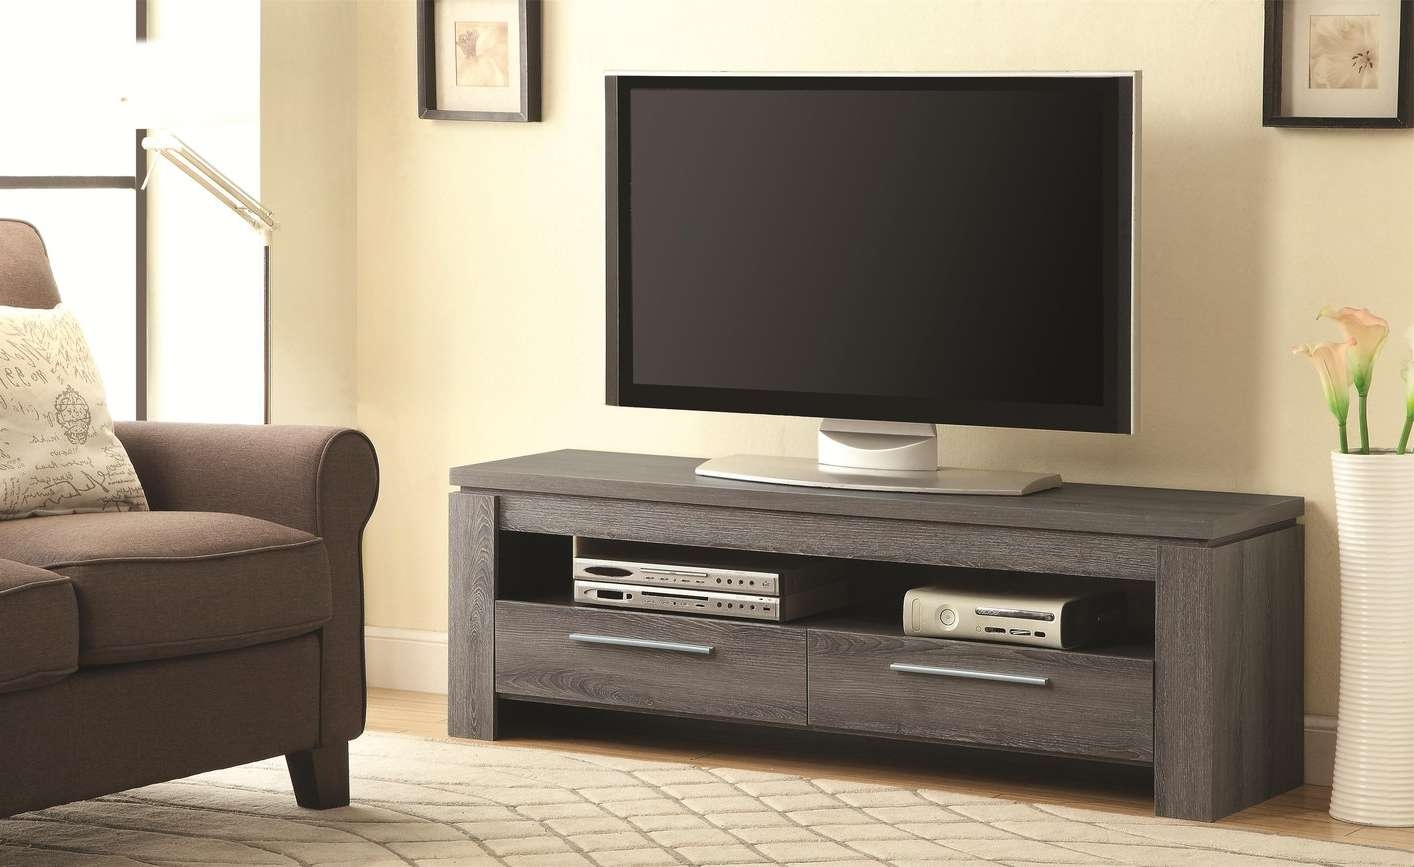 Grey Wood Tv Stand – Steal A Sofa Furniture Outlet Los Angeles Ca Pertaining To Grey Wood Tv Stands (View 2 of 15)